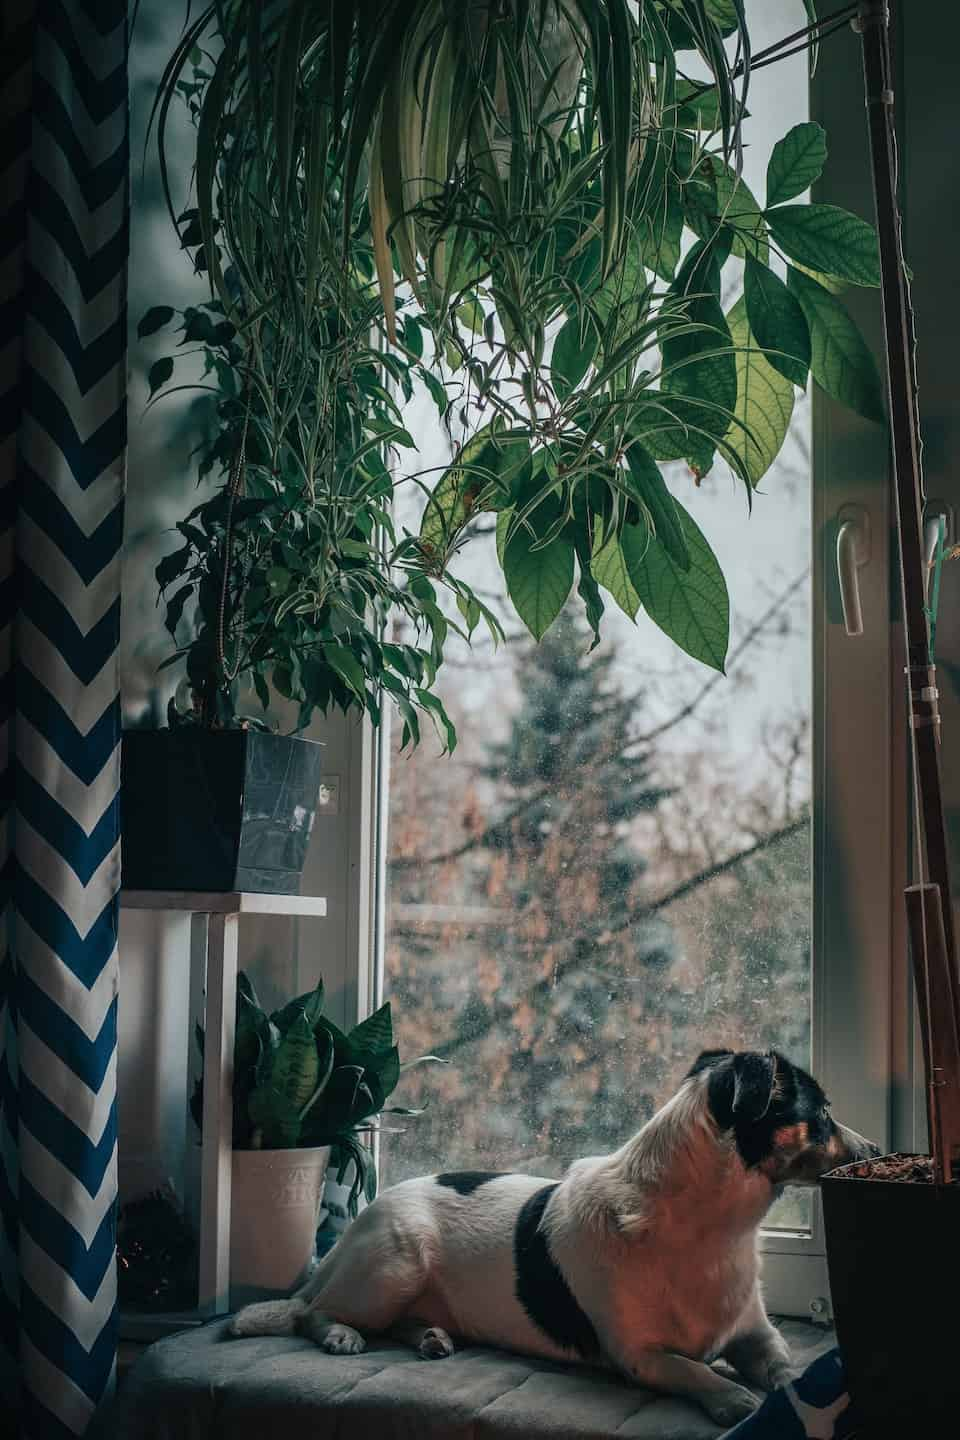 Dog relaxing at home - Photo by Samur Isma